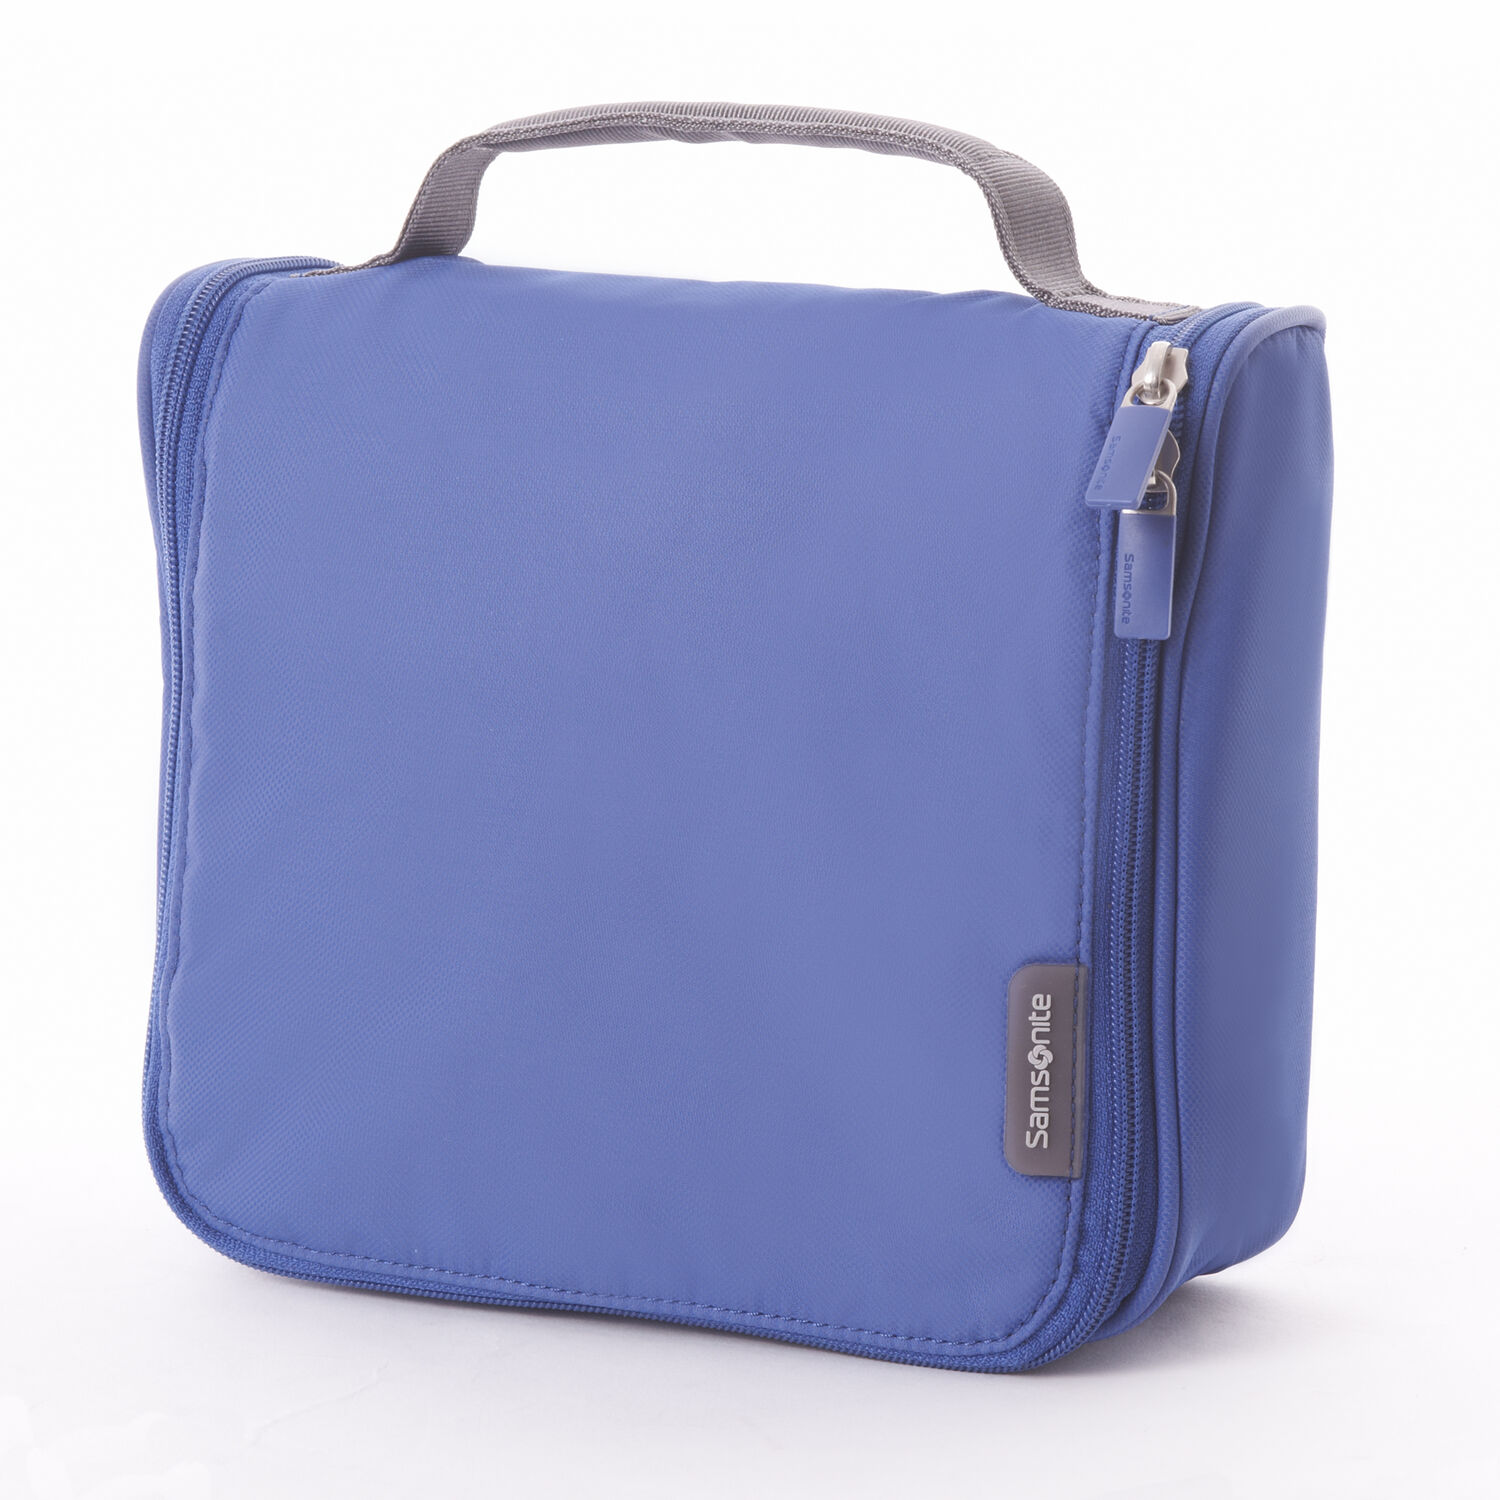 5138b9b83d82 Samsonite CAN Accessories Hanging Toiletry Kit in the color Blue.